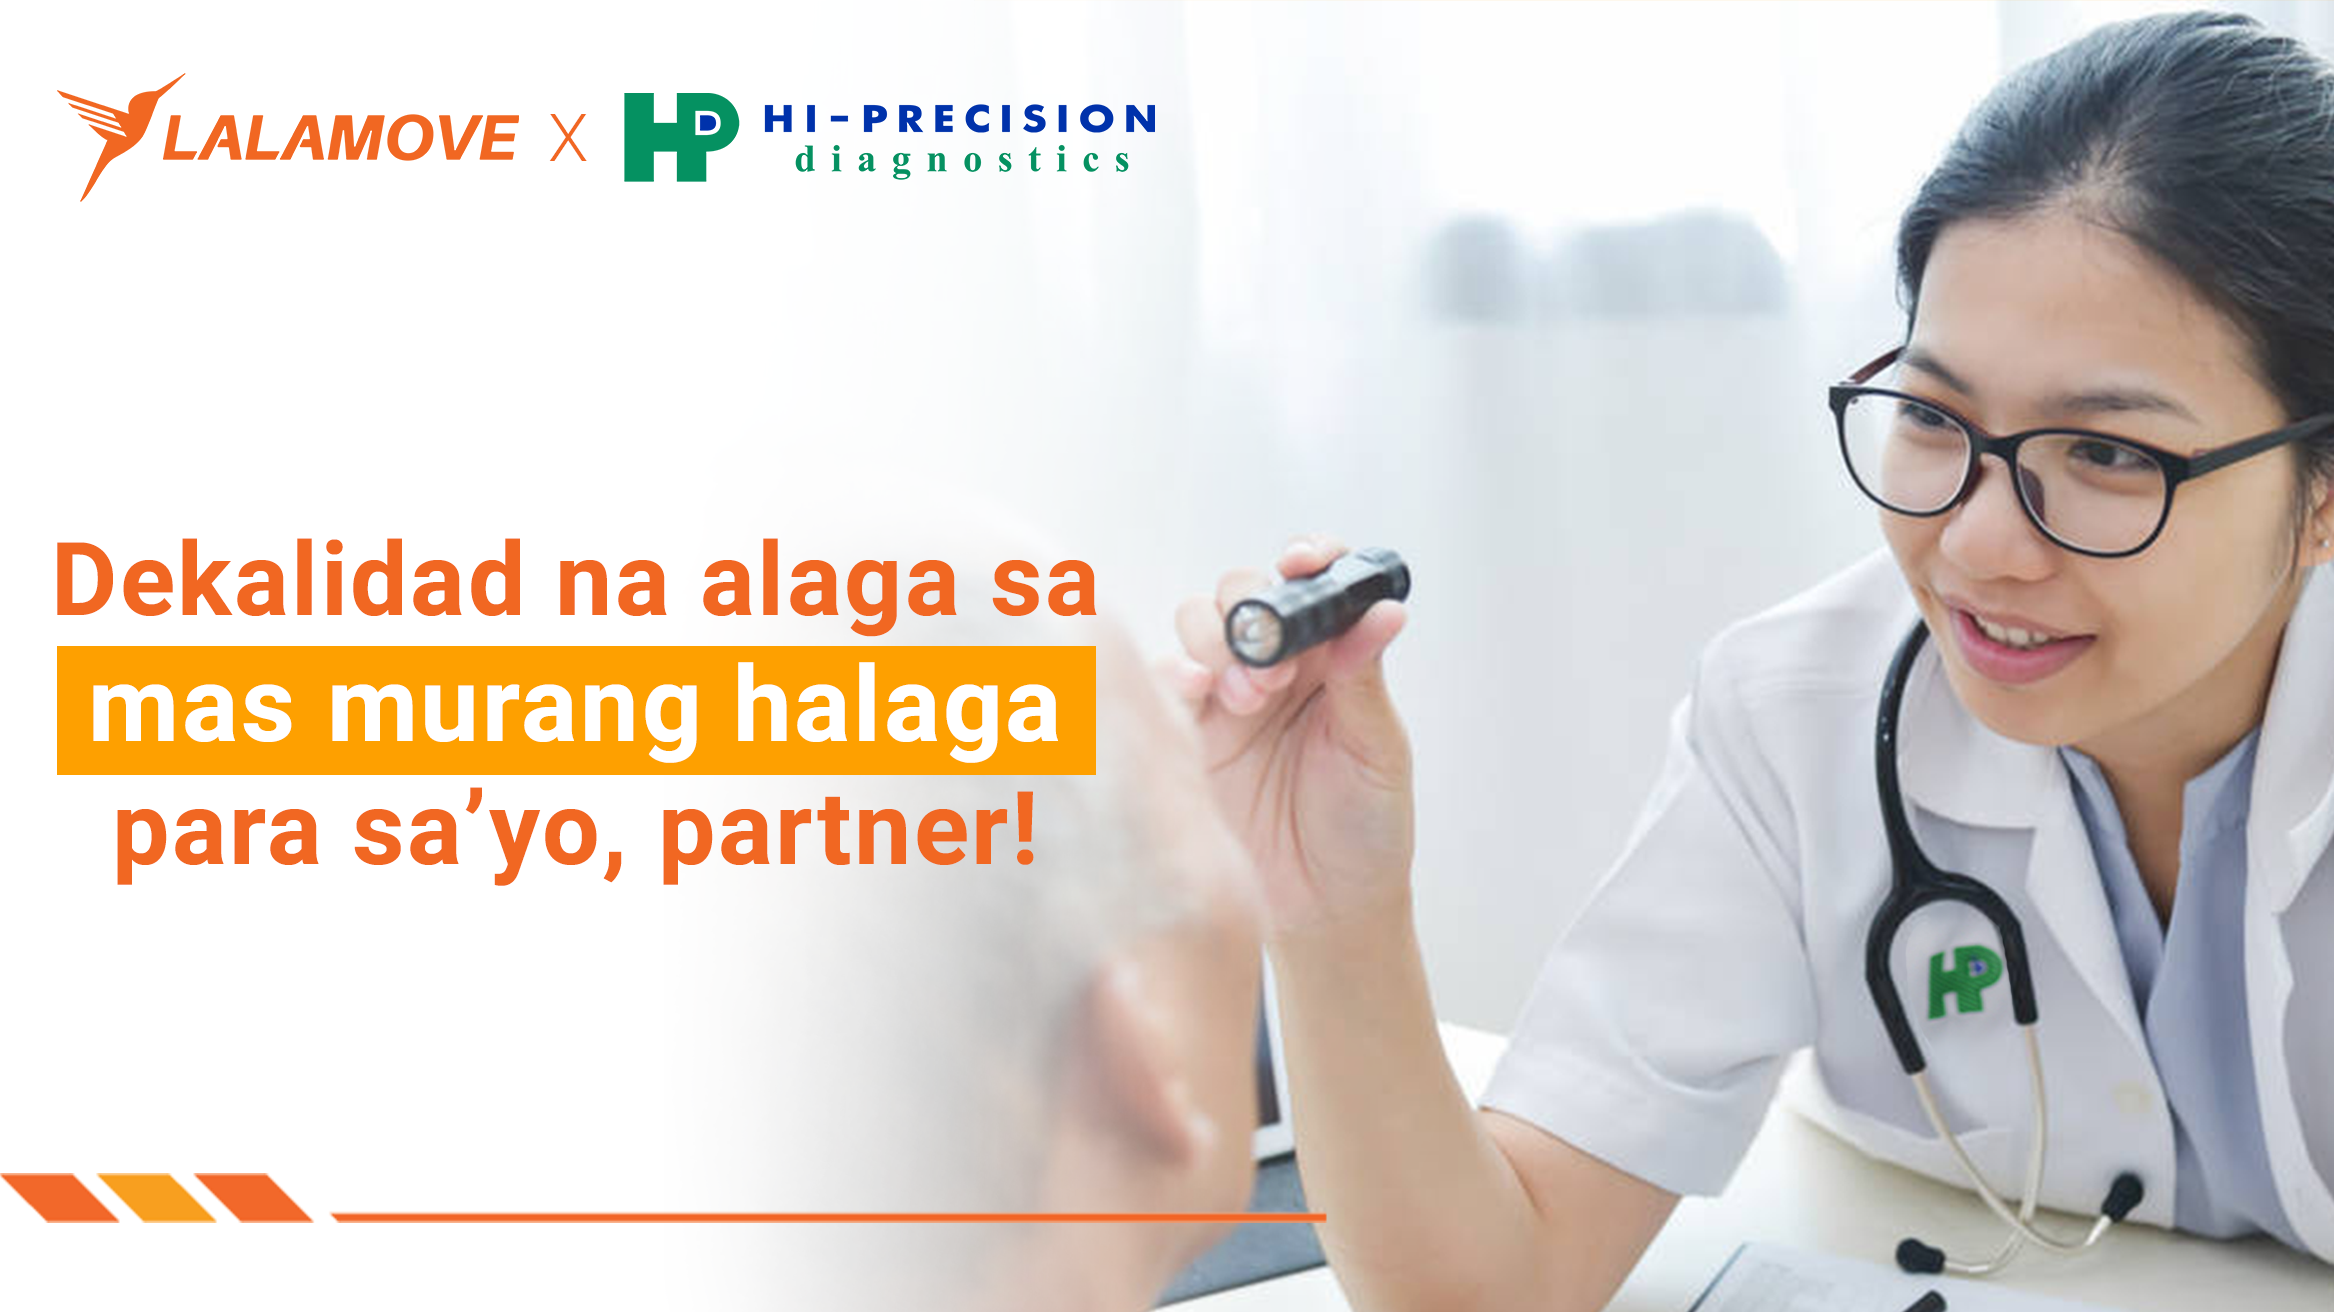 PANALOMOVE: Discount sa Check-up Packages ng Hi-Precision Diagnostics